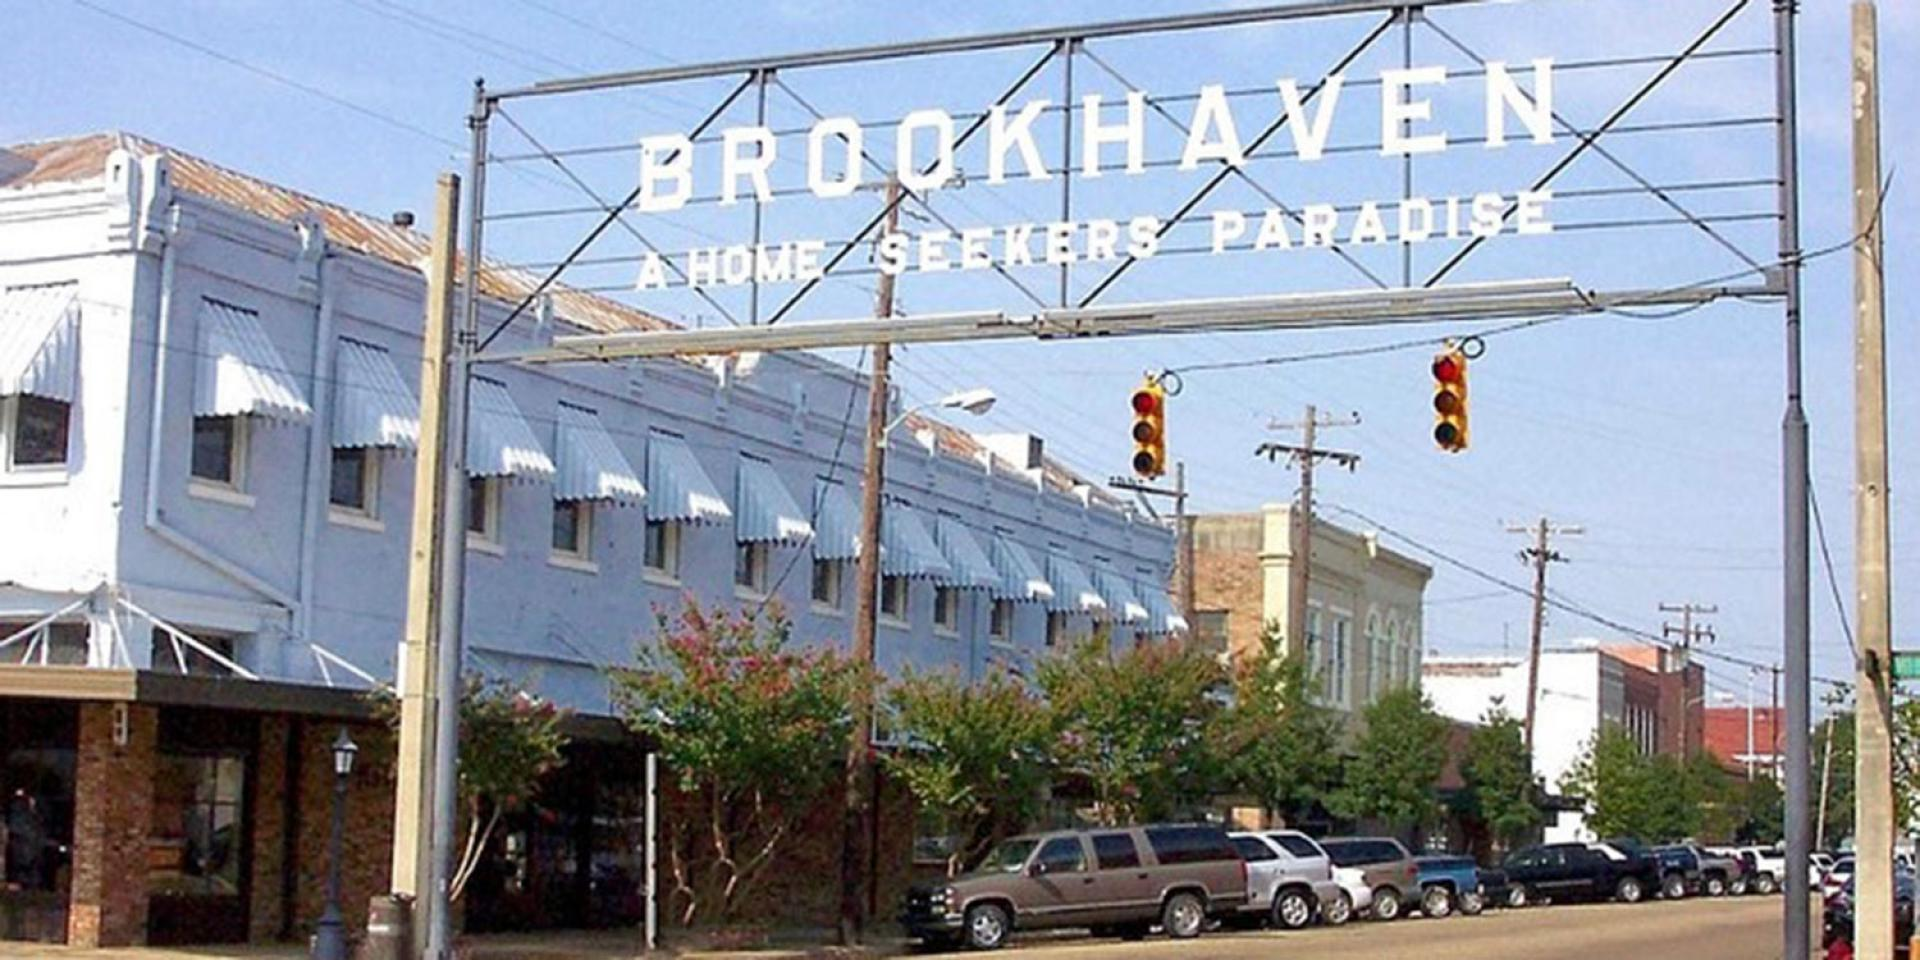 Photo of Brookhaven, a rural town